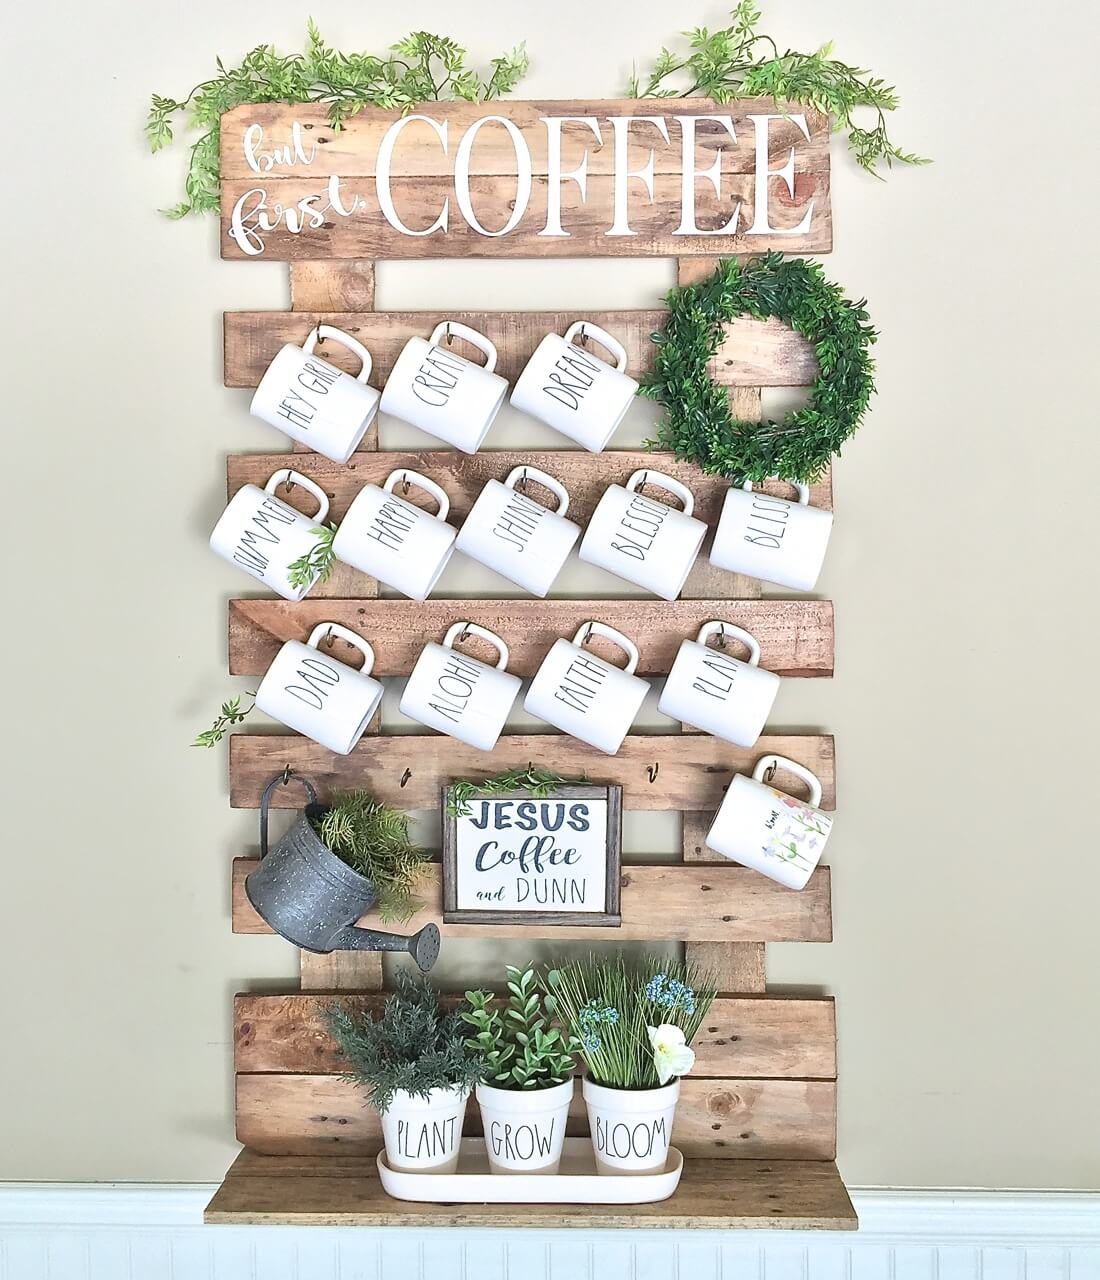 26 Best Diy Coffee Mug Holder Ideas And Projects For 2021